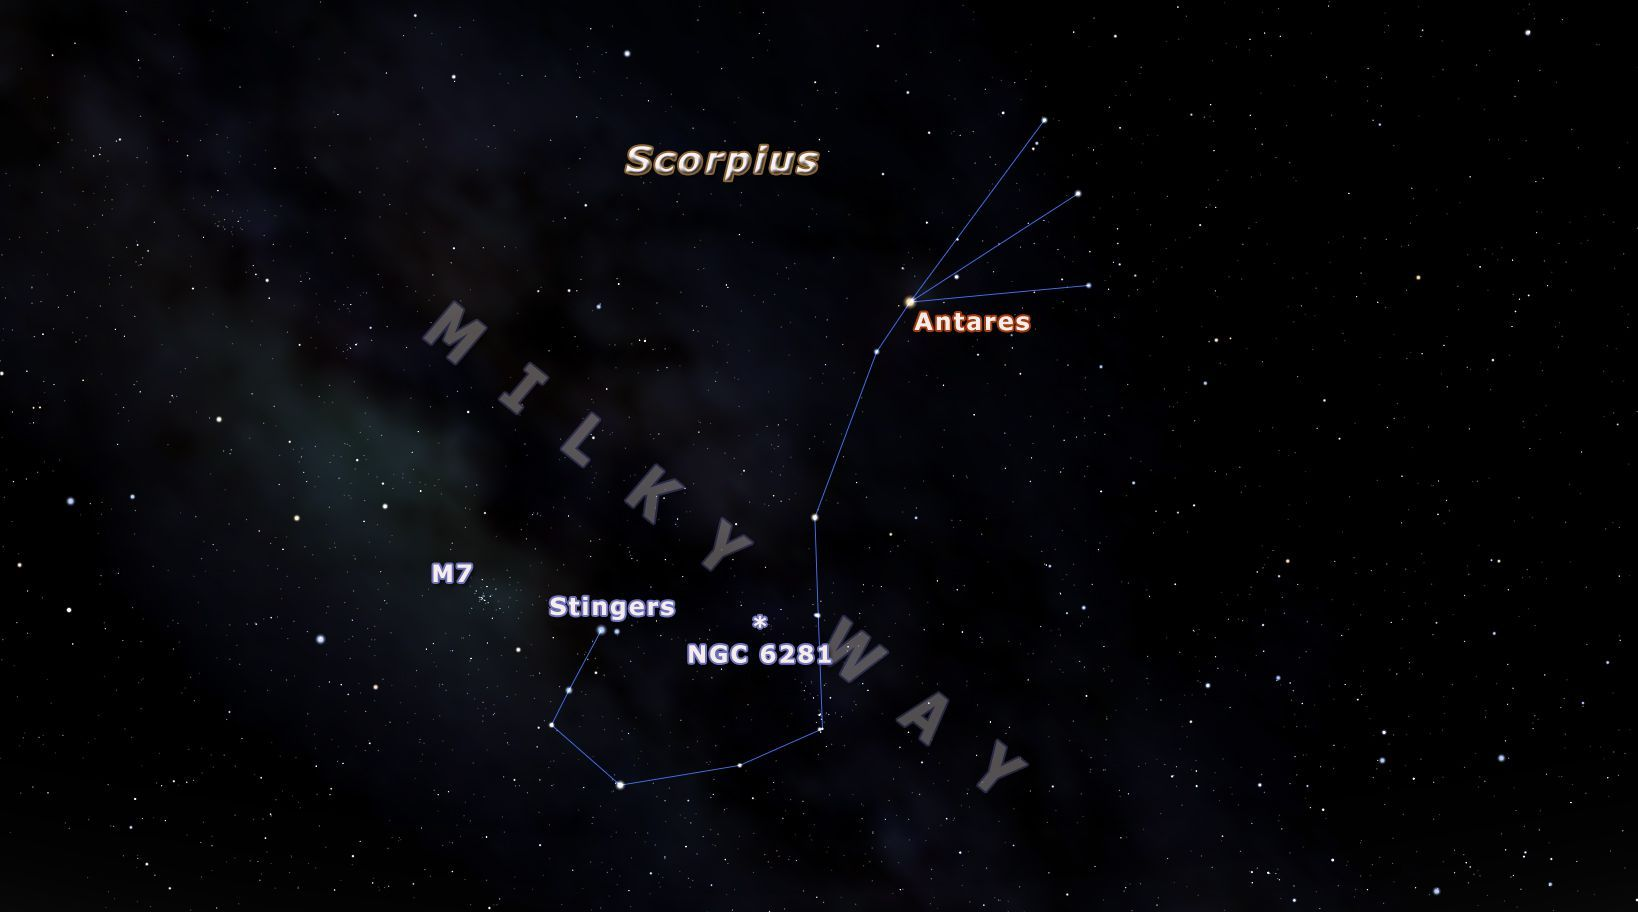 How To Spot The Scorpius Constellation Constellations Stargazing Constellations In The Sky [ 912 x 1638 Pixel ]